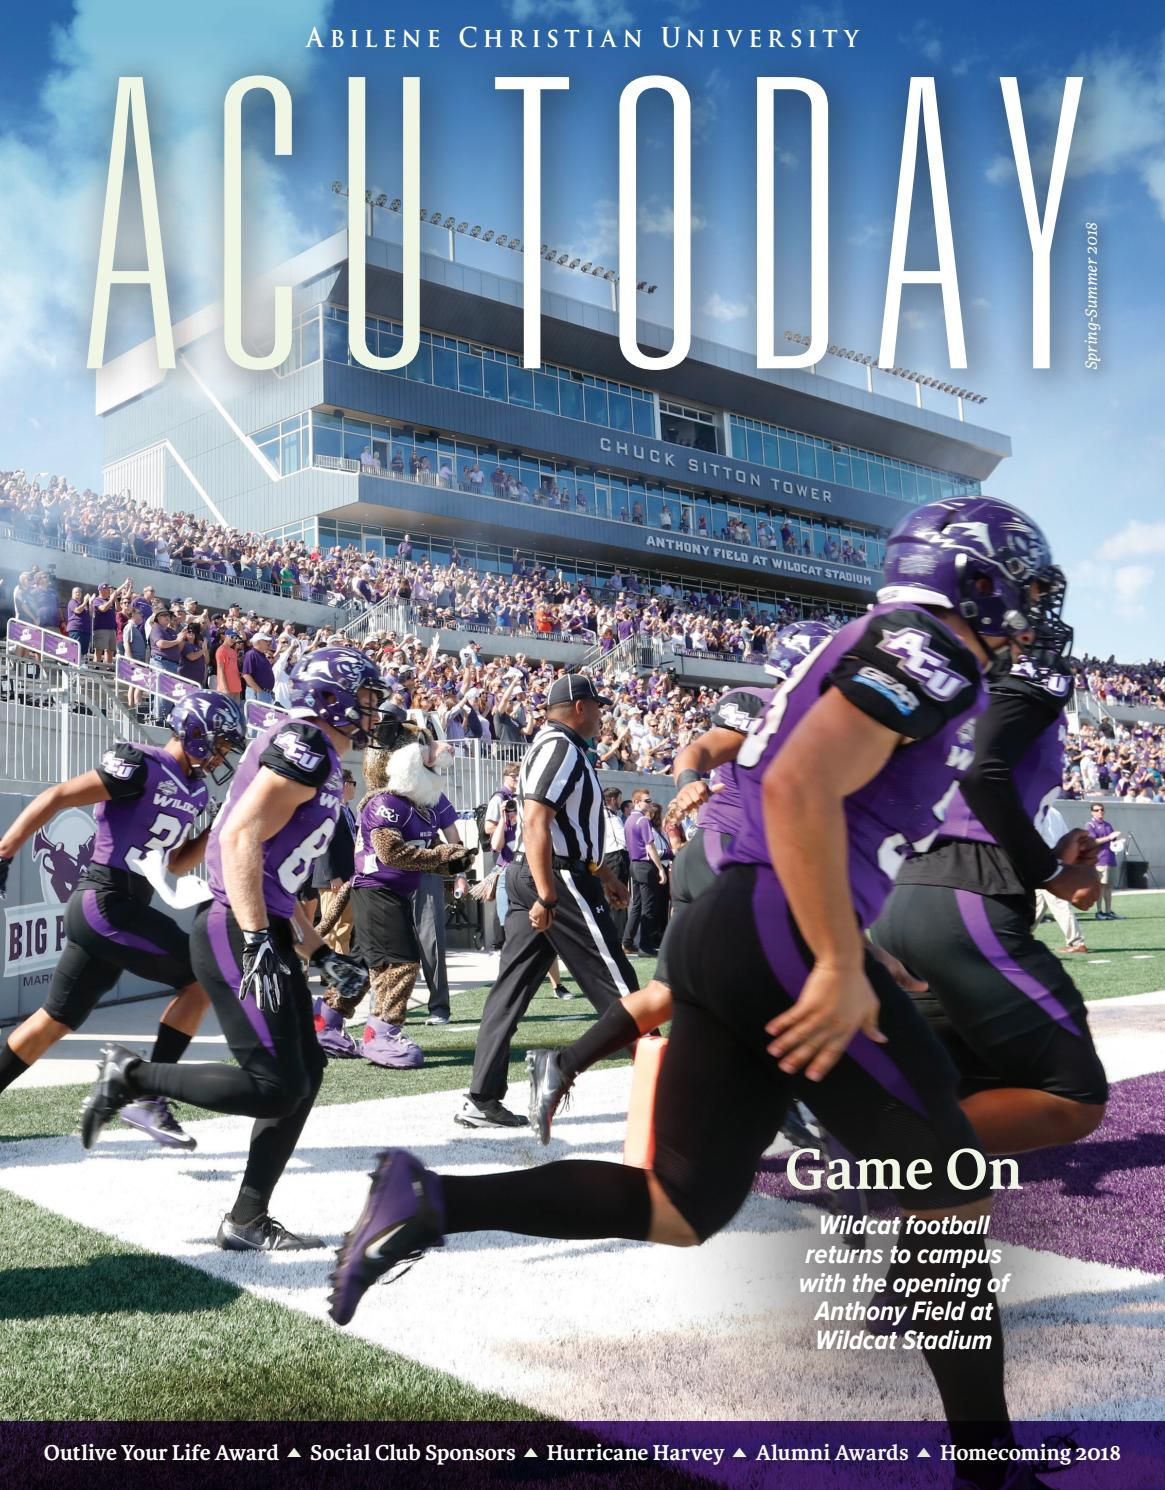 e5fd0a1eb9b9 ACU Today Spring Summer 2018 by Abilene Christian University - issuu